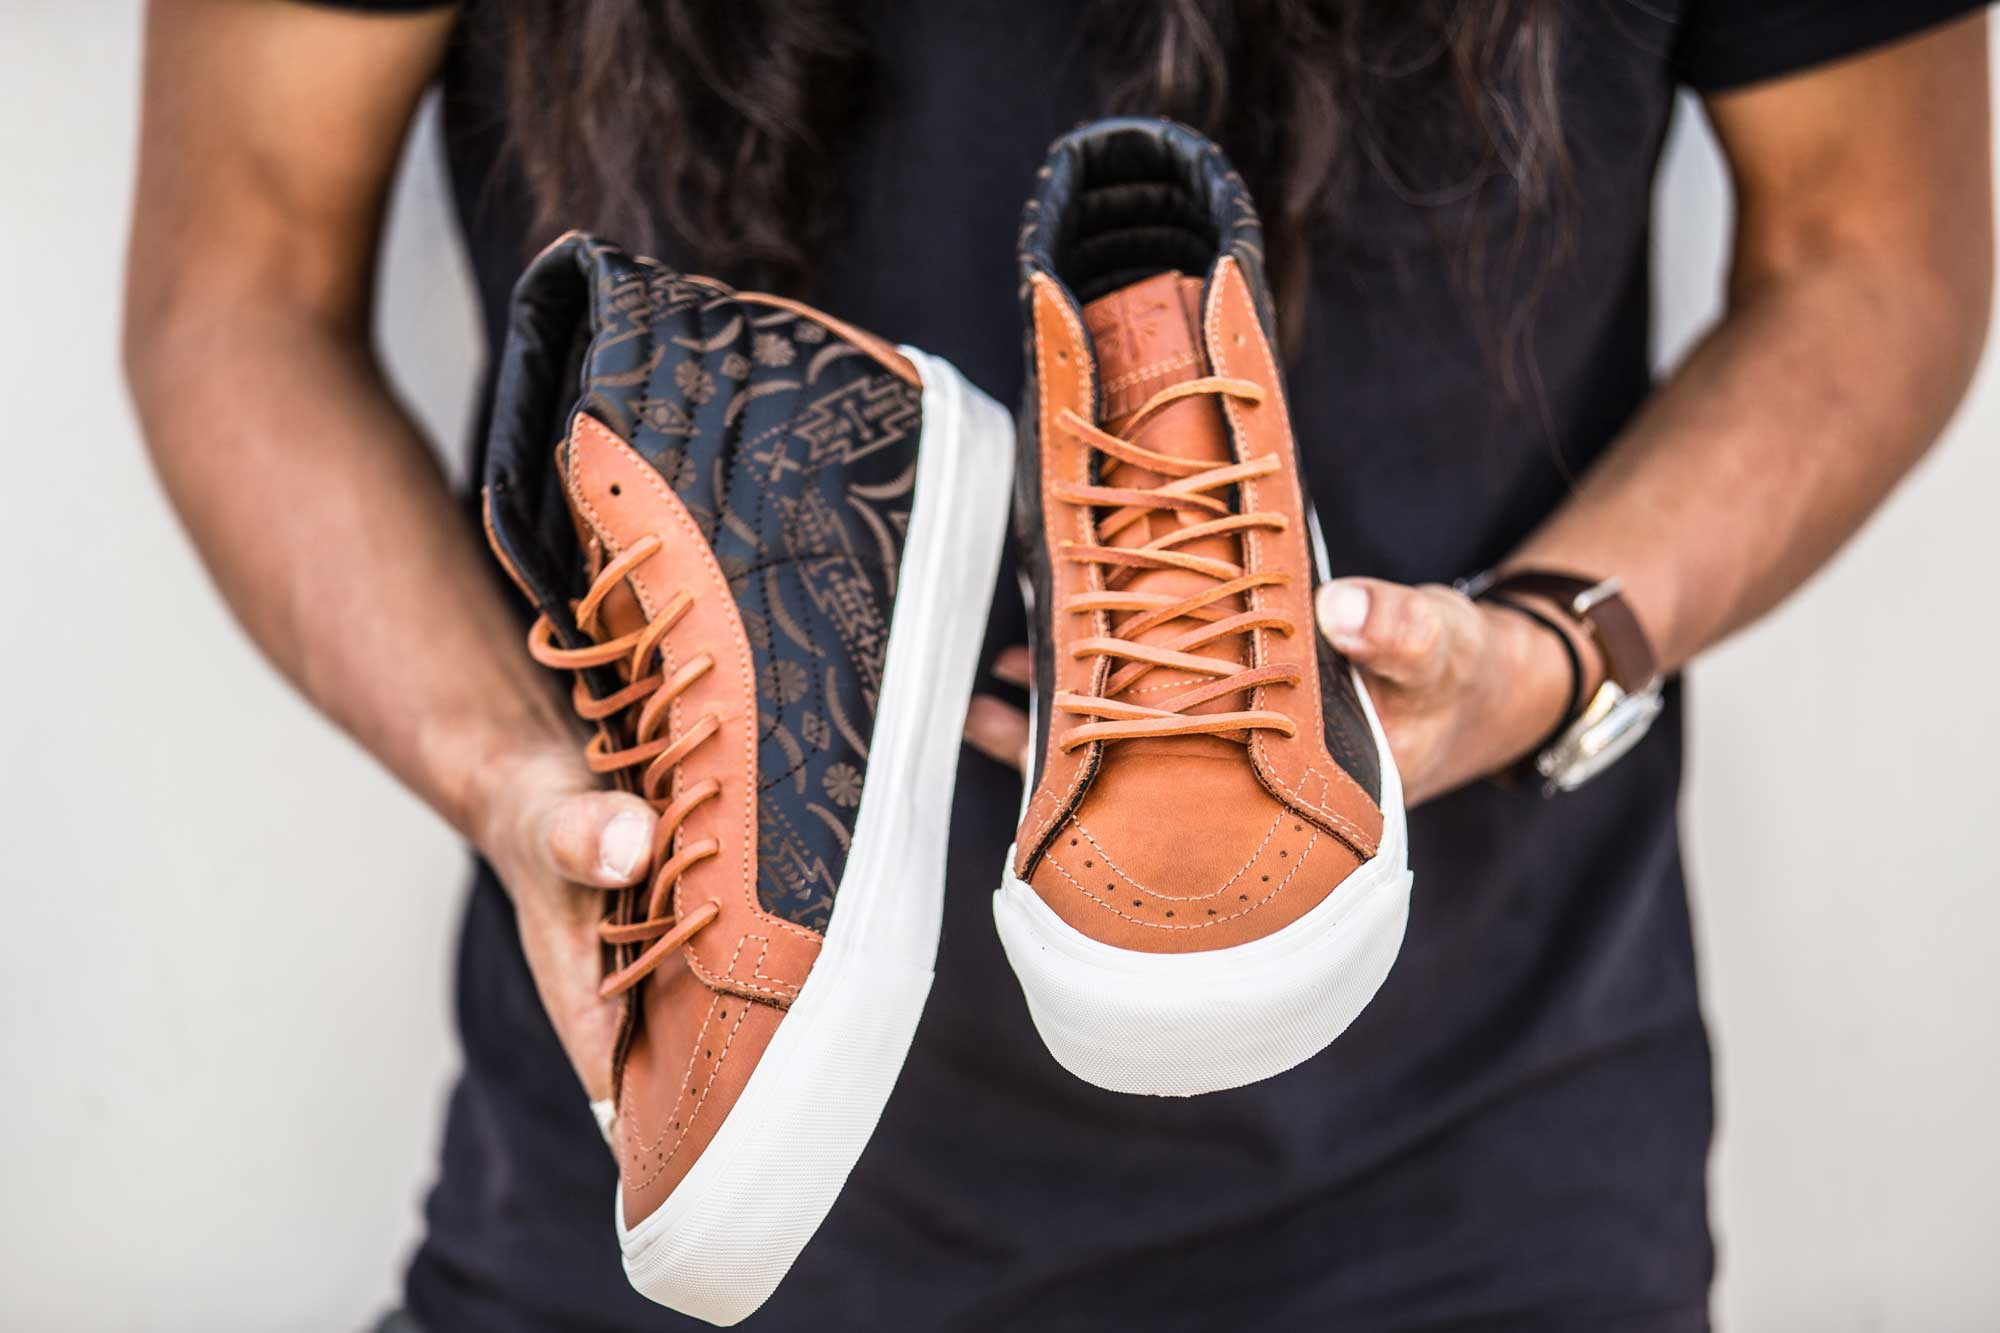 f7af2e9fc8 Brooks England teamed up with Taka Hayahsi s Vault by Vans in celebration  of their respective 150th and 50th Year Anniversary s.